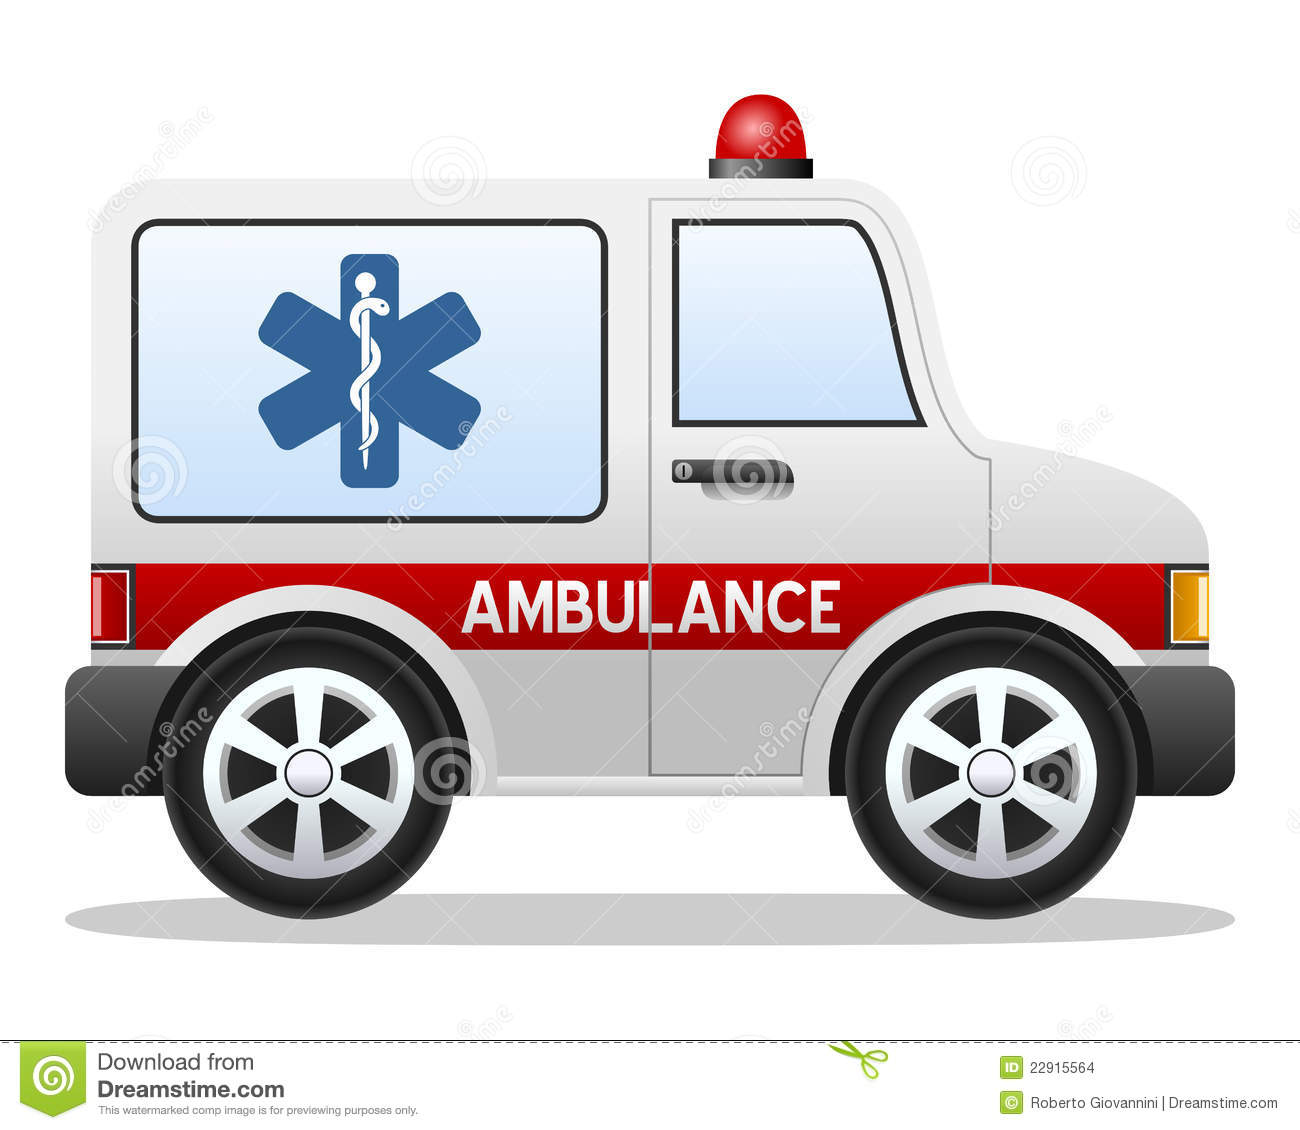 cartoon ambulance car stock vector illustration of White School Bus black white bus clip art